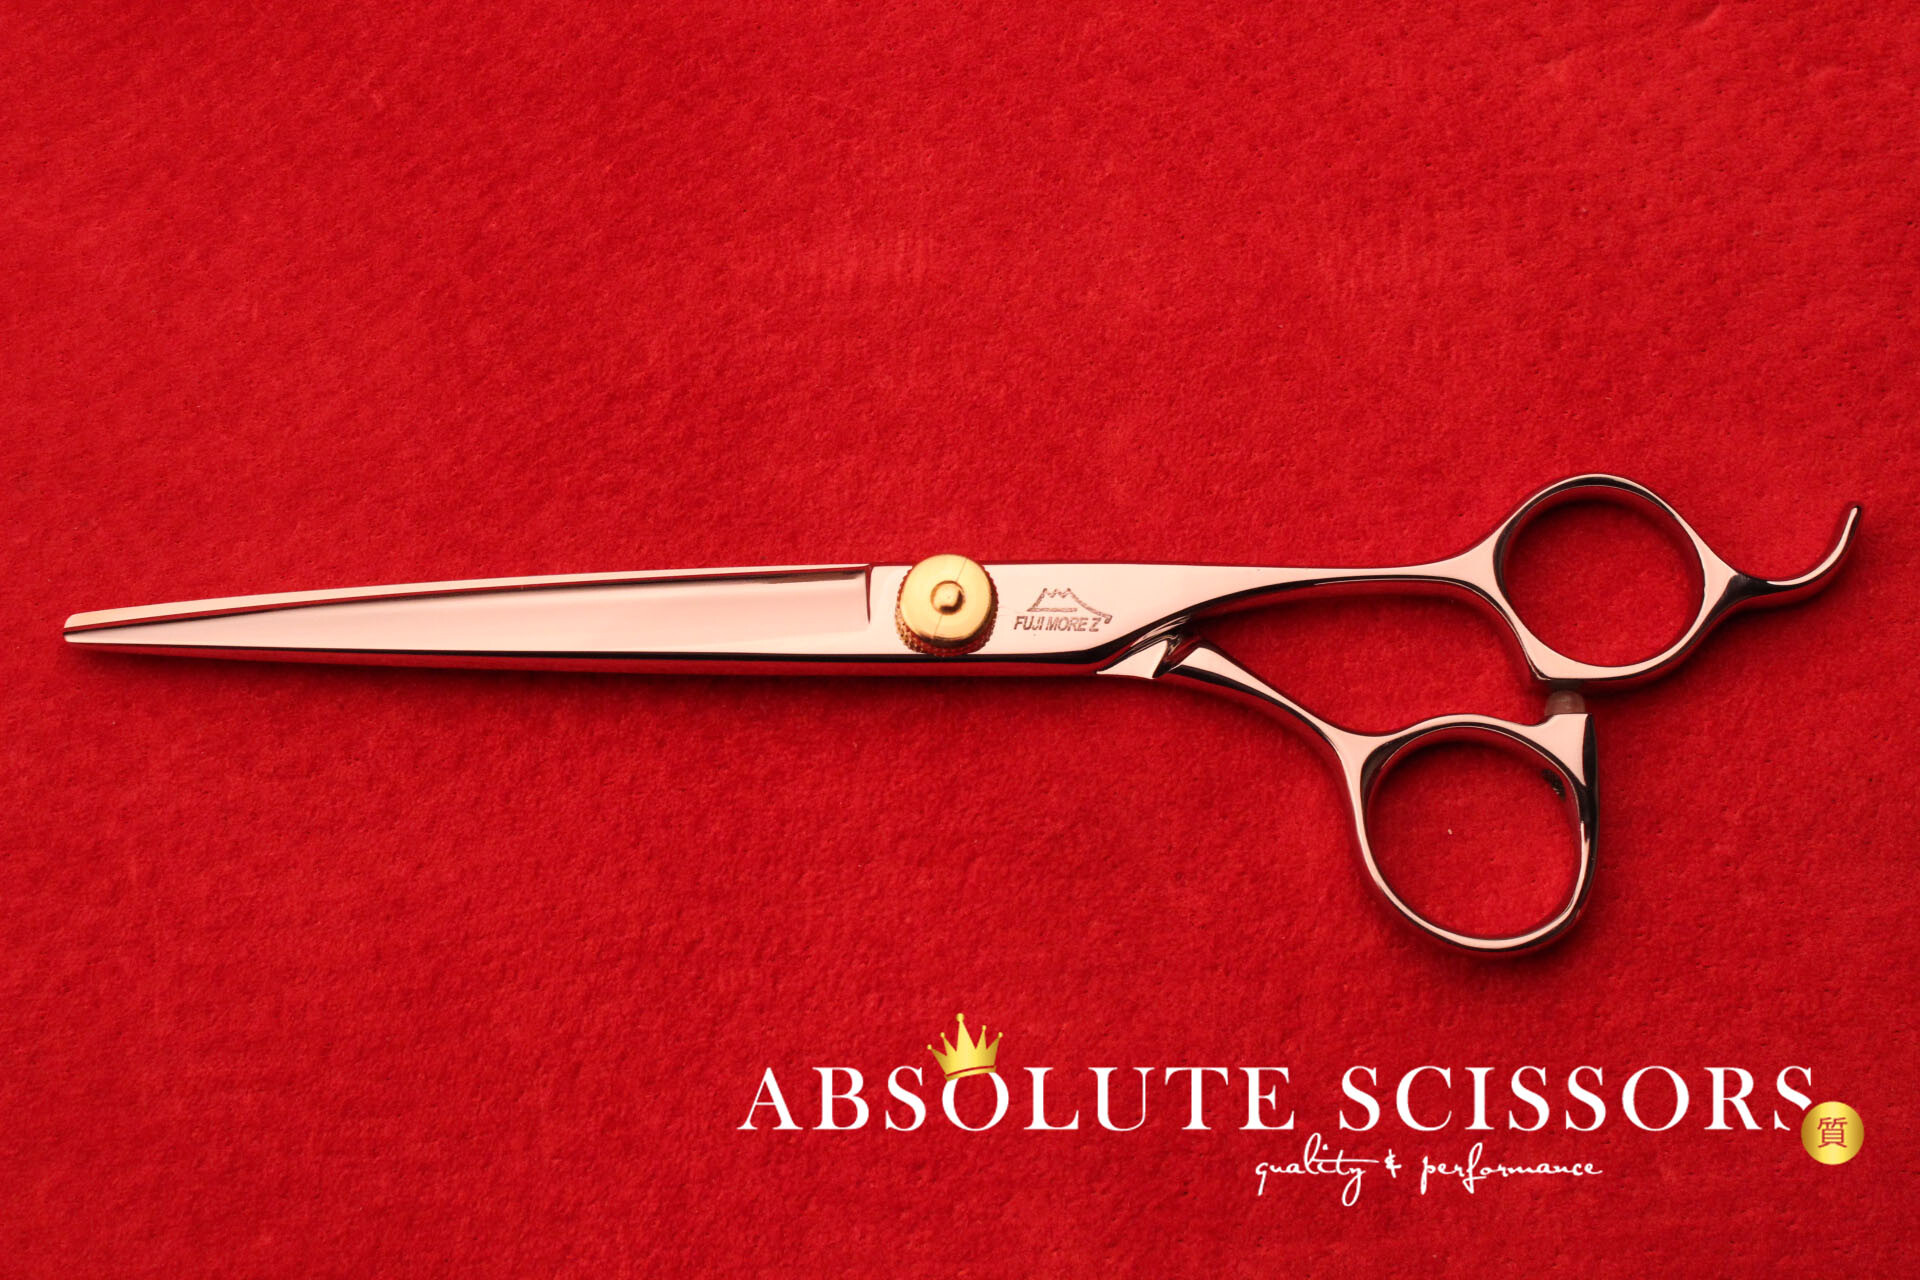 DXF65 3814 Fuji hair scissors size 6.5 inches